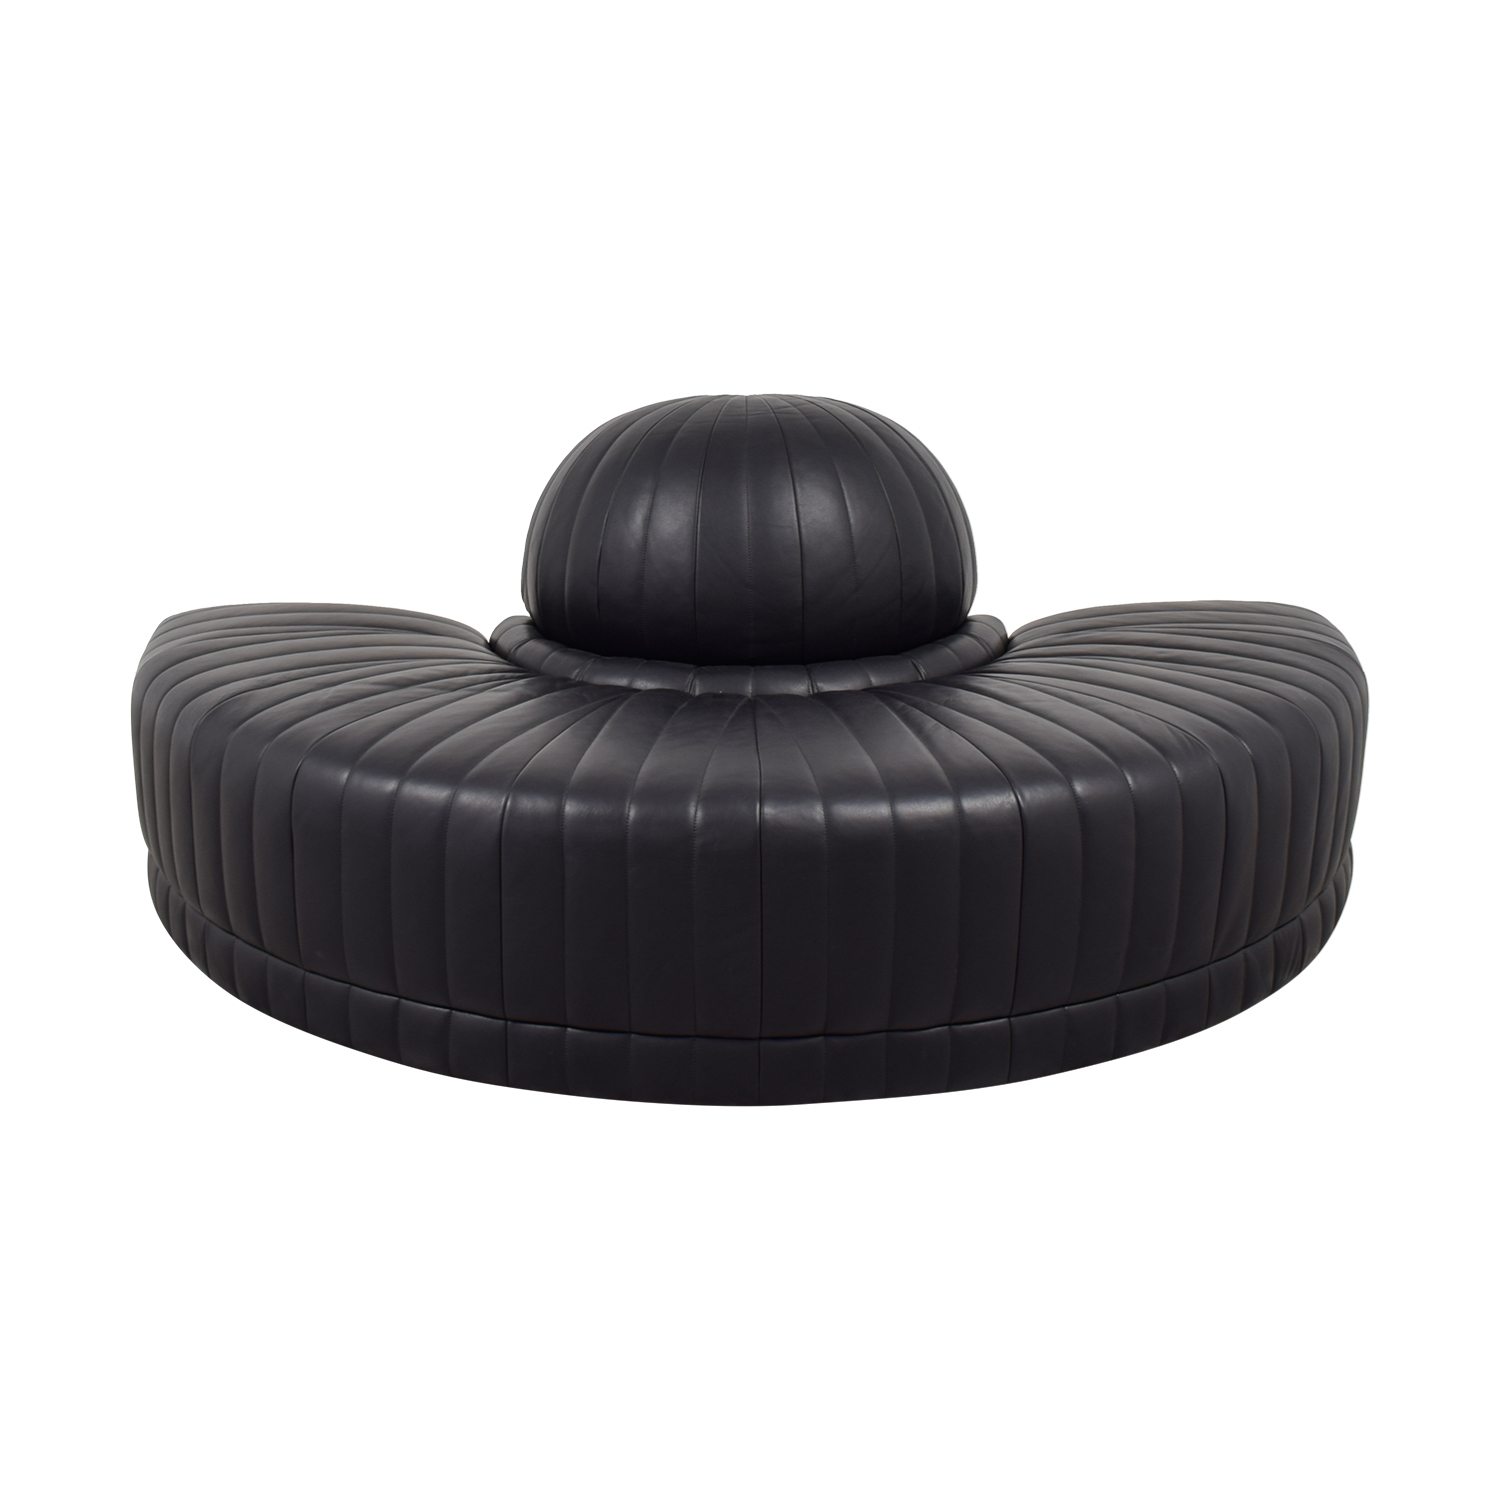 Roche Bobois Roche Bobois Black Leather Half Moon Couch Sofas